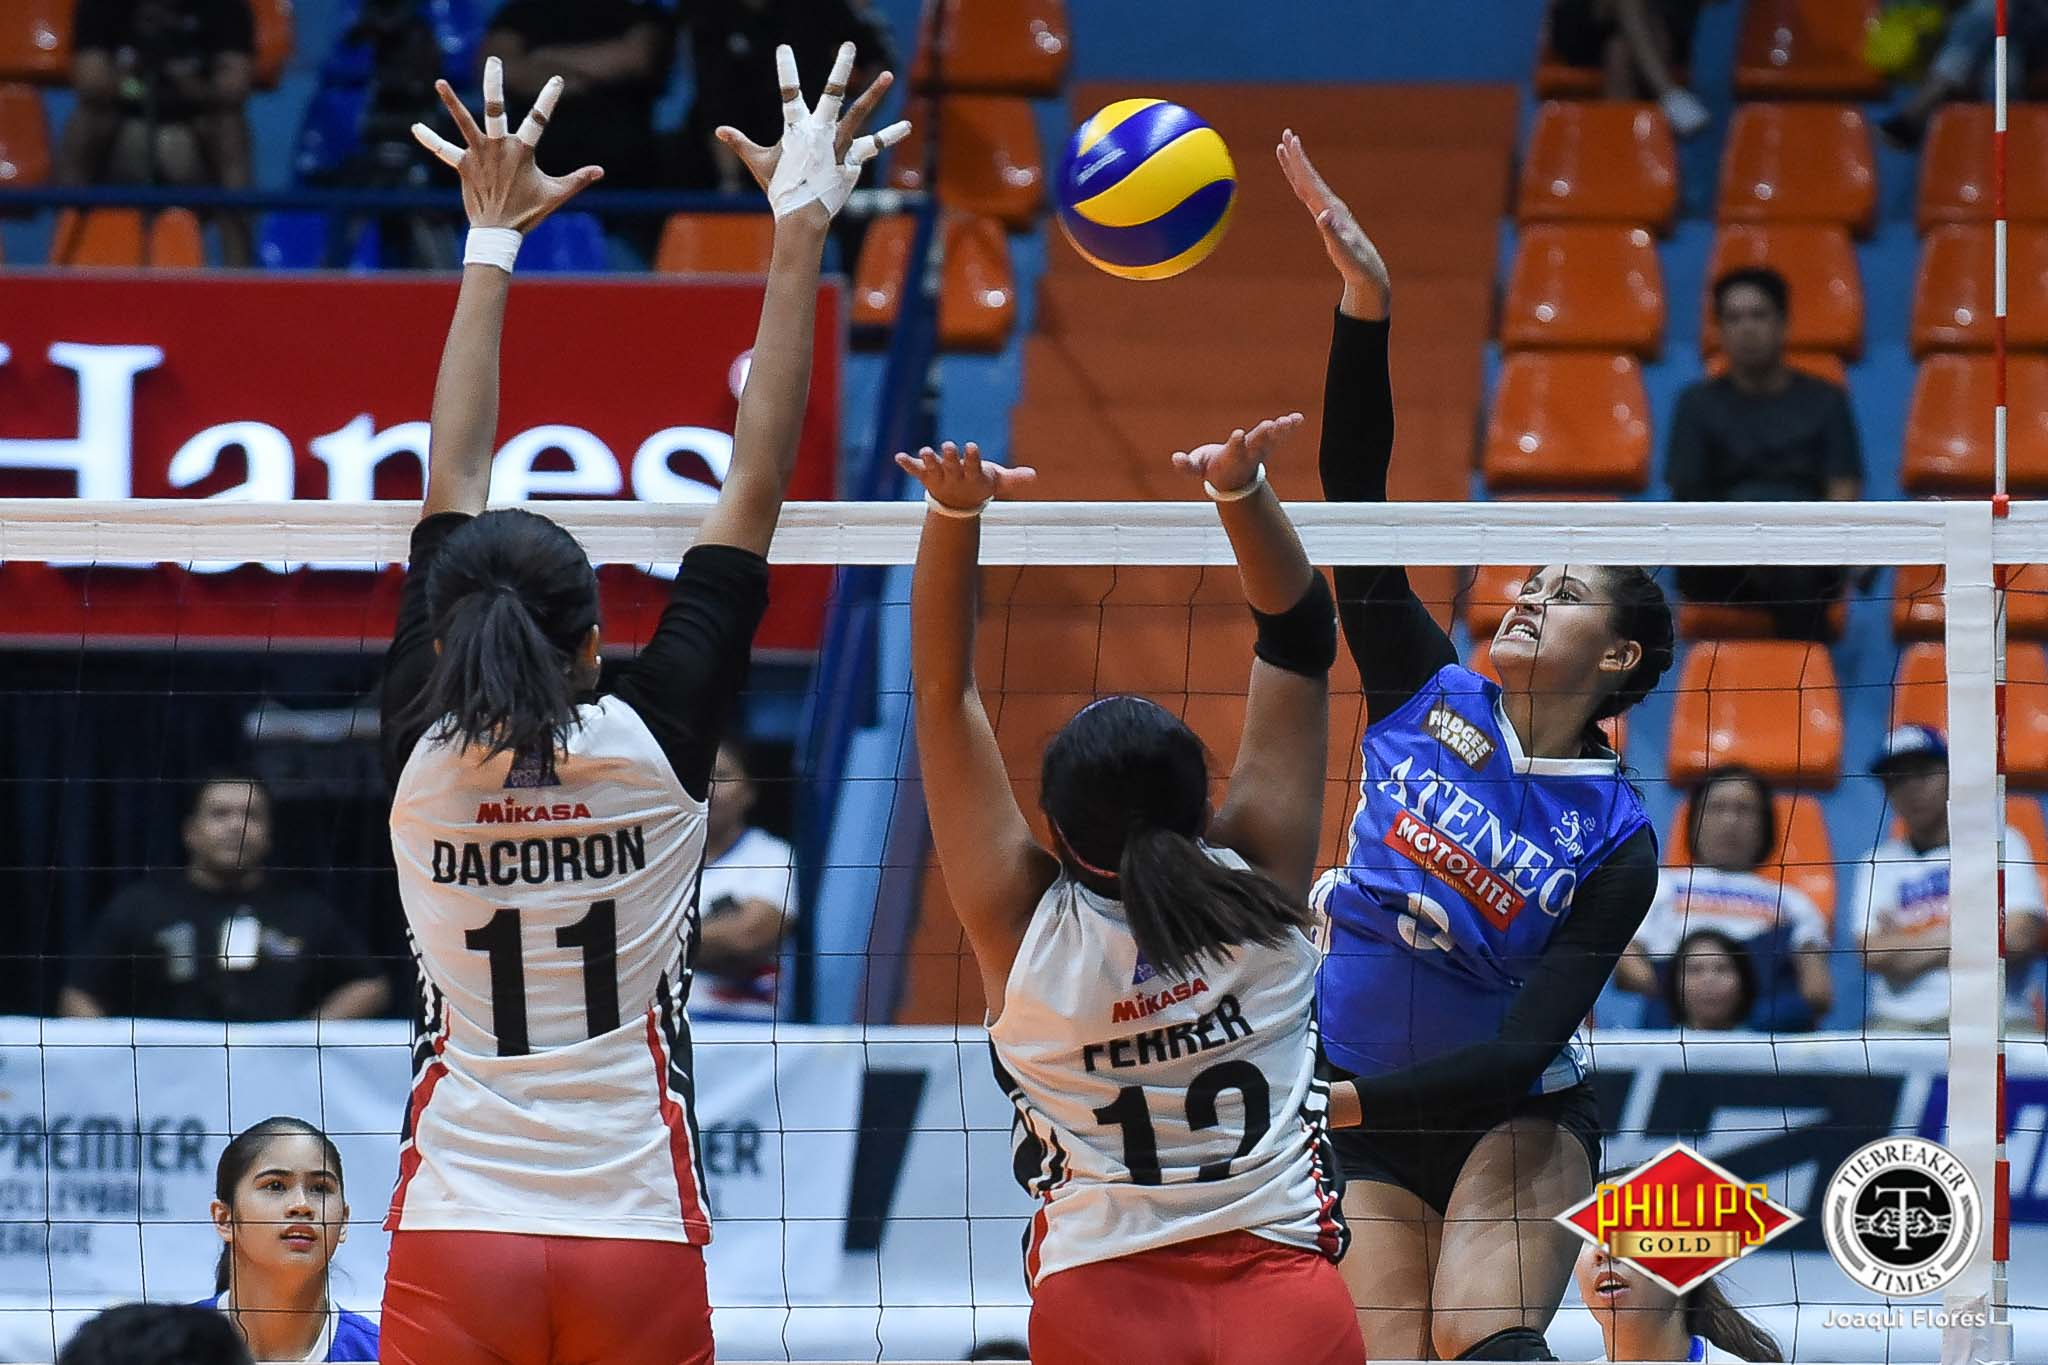 Tiebreaker Times Ateneo-Motolite vanquishes BanKo to enter Finals ADMU News PVL Volleyball  Perlas Lady Spikers Oliver Almadro Nicole Tiamzon Maddie Madayag Jules Samonte Dzi Gervacio Dong dela Cruz Deanna Wong Dani Ravena Ateneo-Motolite Lady Eagles 2018 PVL Season 2018 PVL Open Conference